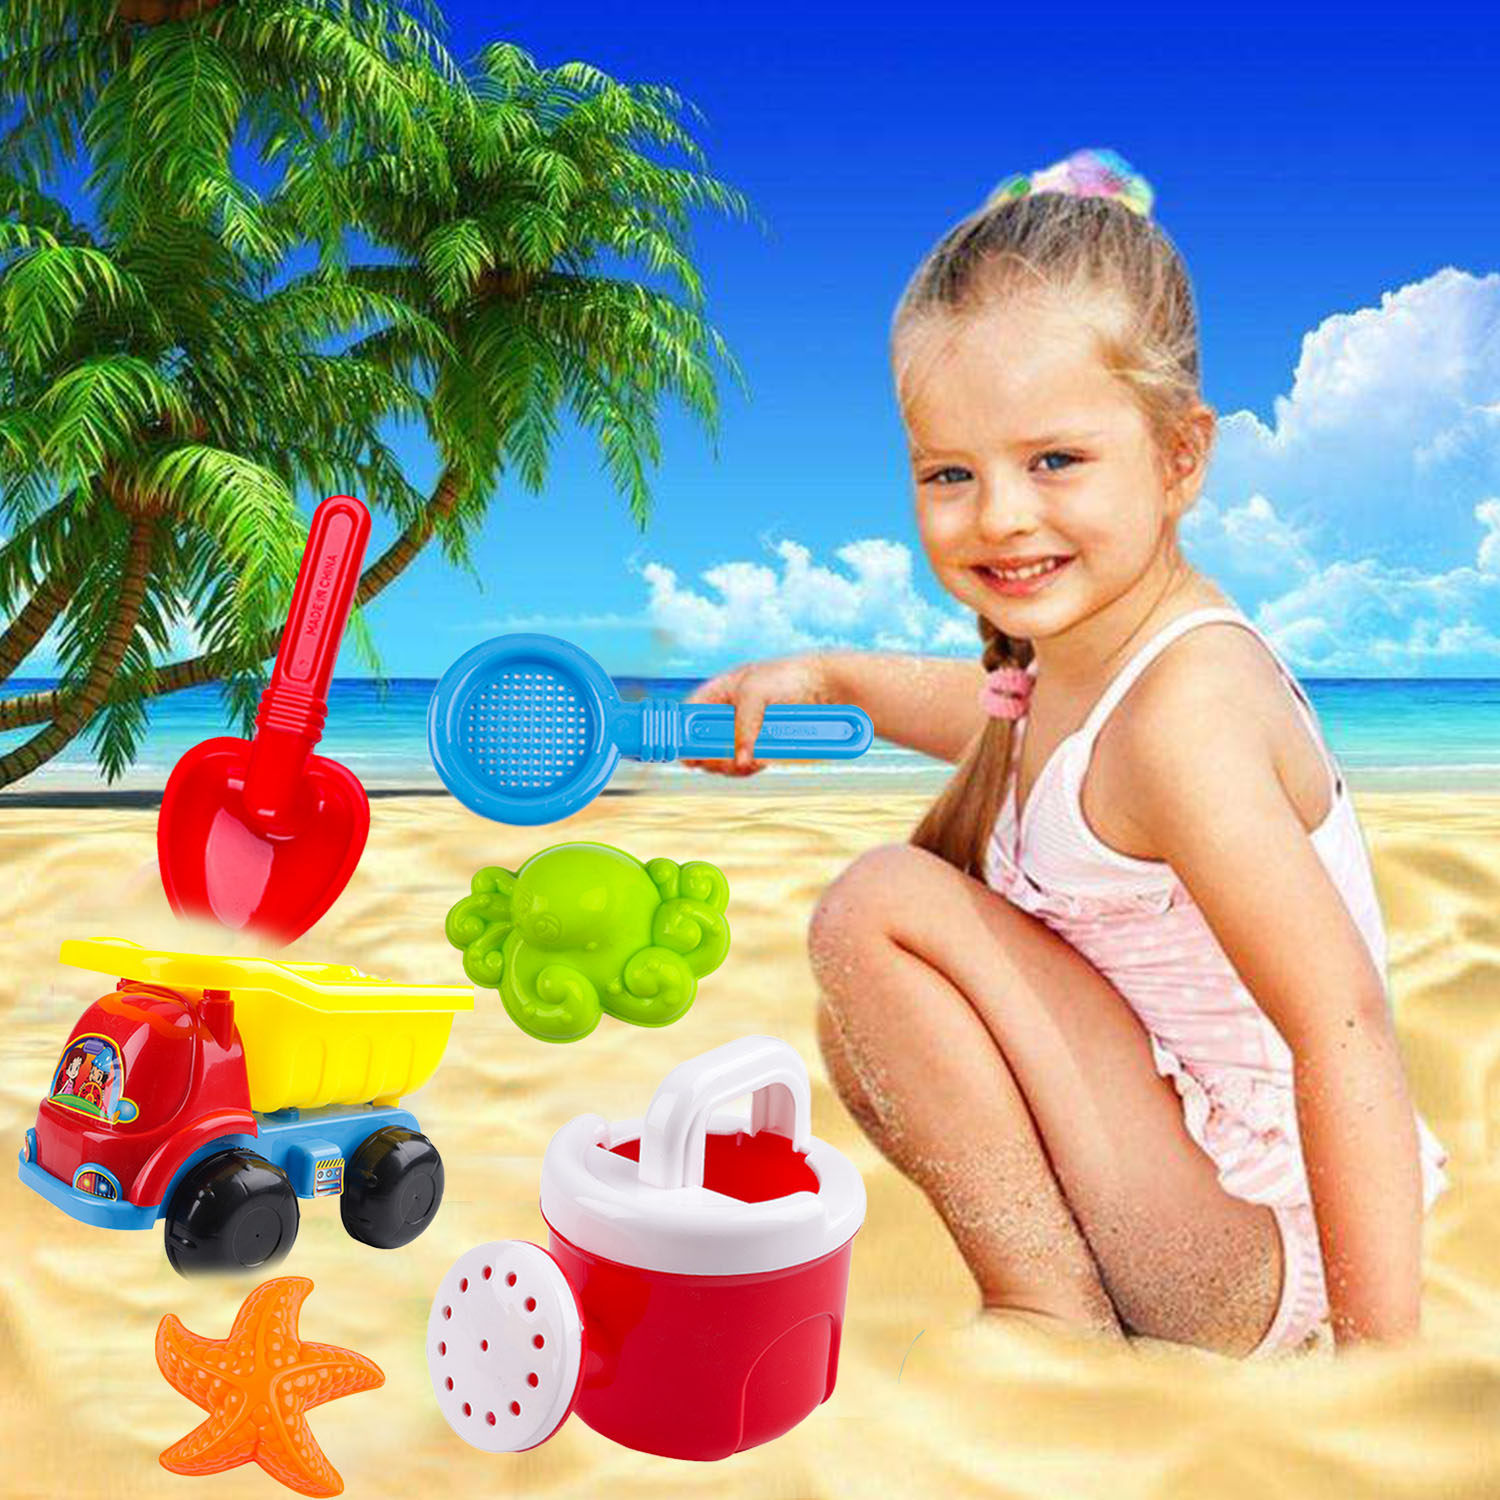 6PCS Funny Summer Beach Sand Game Toys Set With Car Watering Can Shovel Starfish Octopus Filter For Kids Outdoor Beach Sand Toys